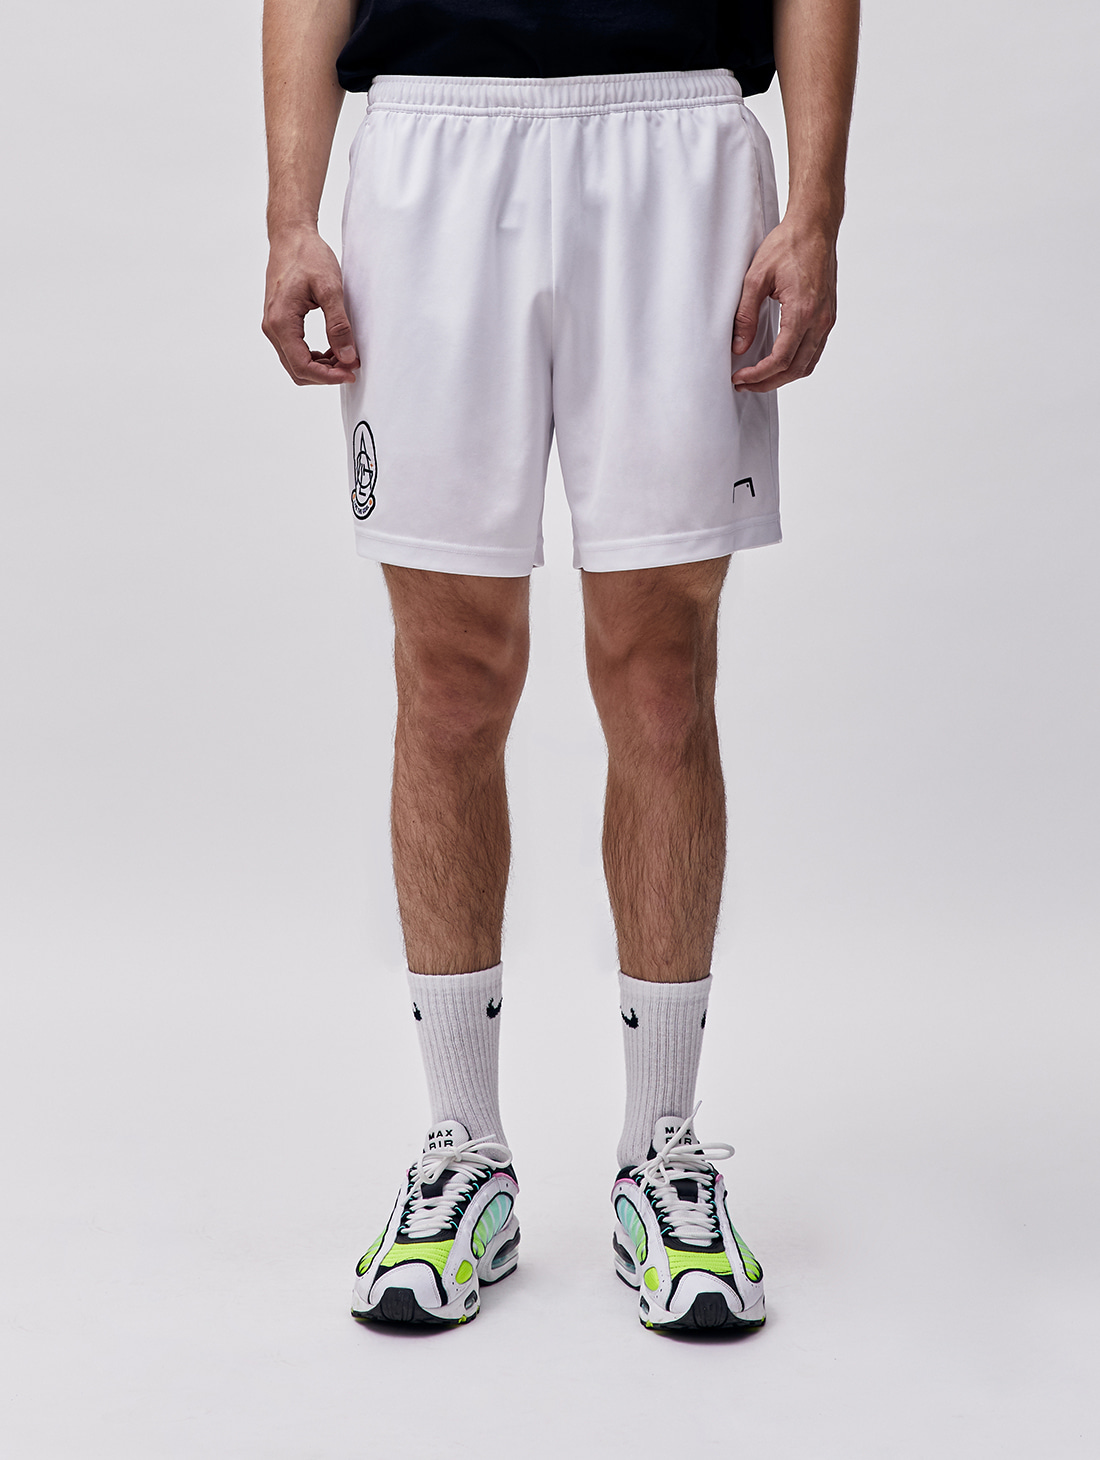 PLAYER EMBLEM SHORTS - WHITE